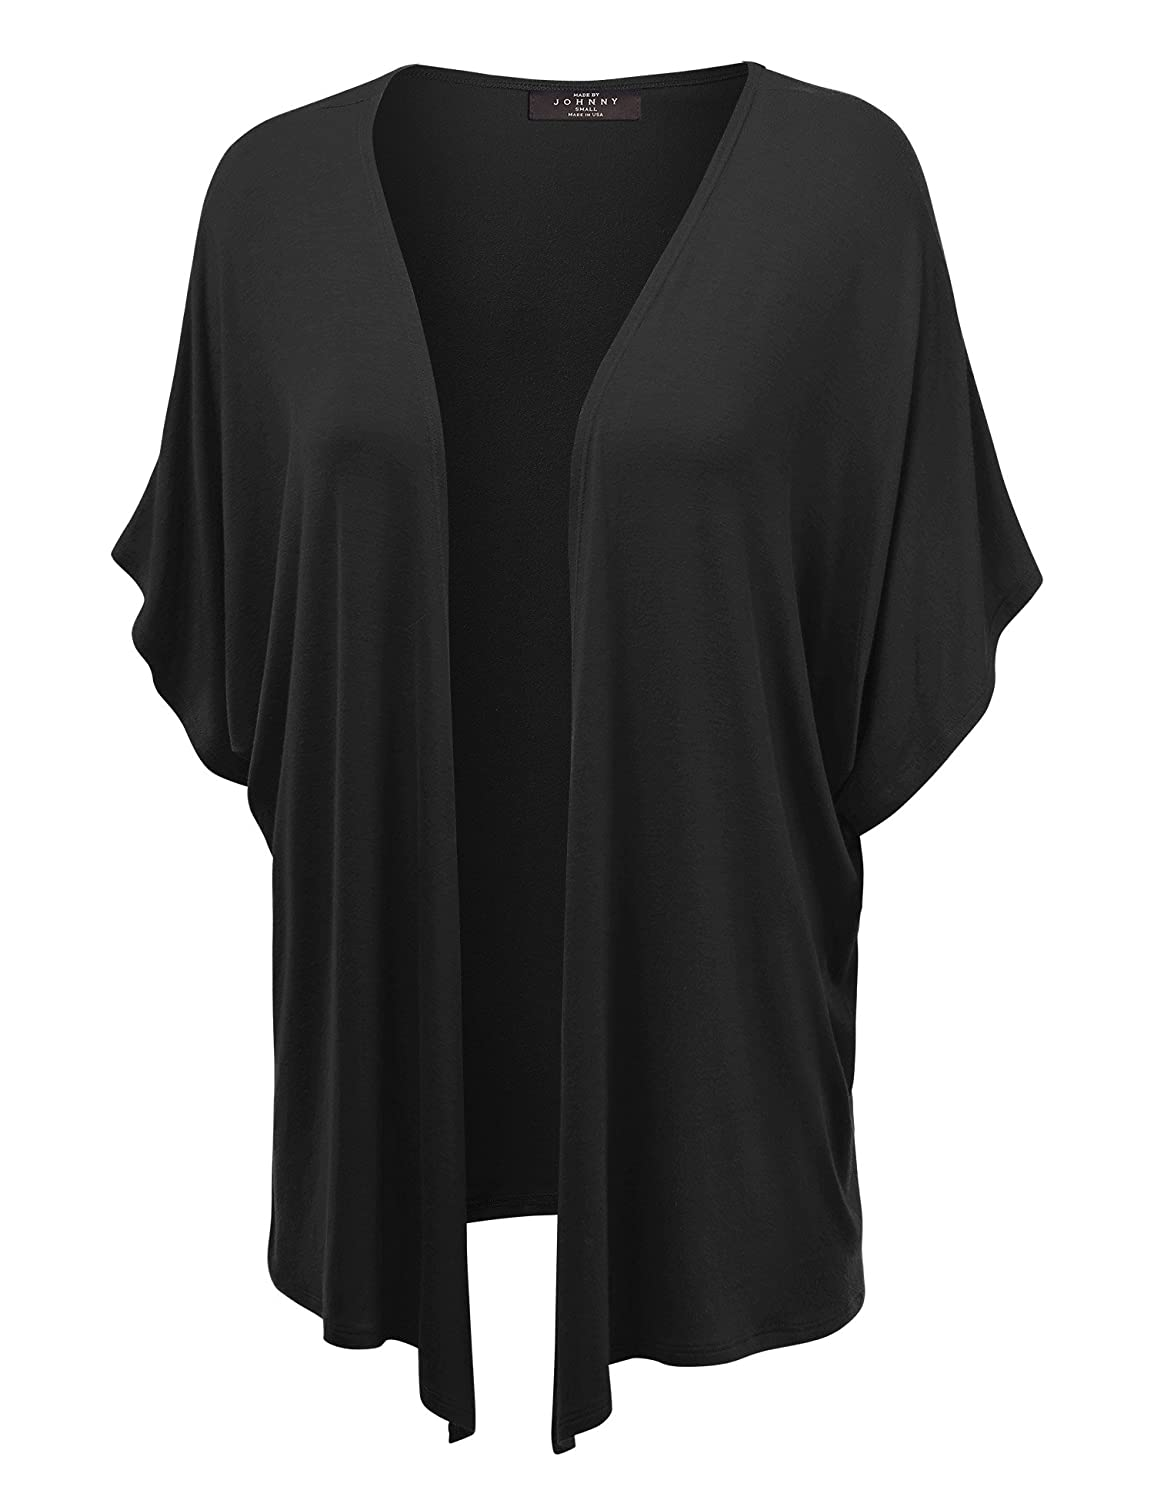 c2c8ccc60 MBJ Womens Short Sleeve Kimono Style Cardigan - Made in USA at ...